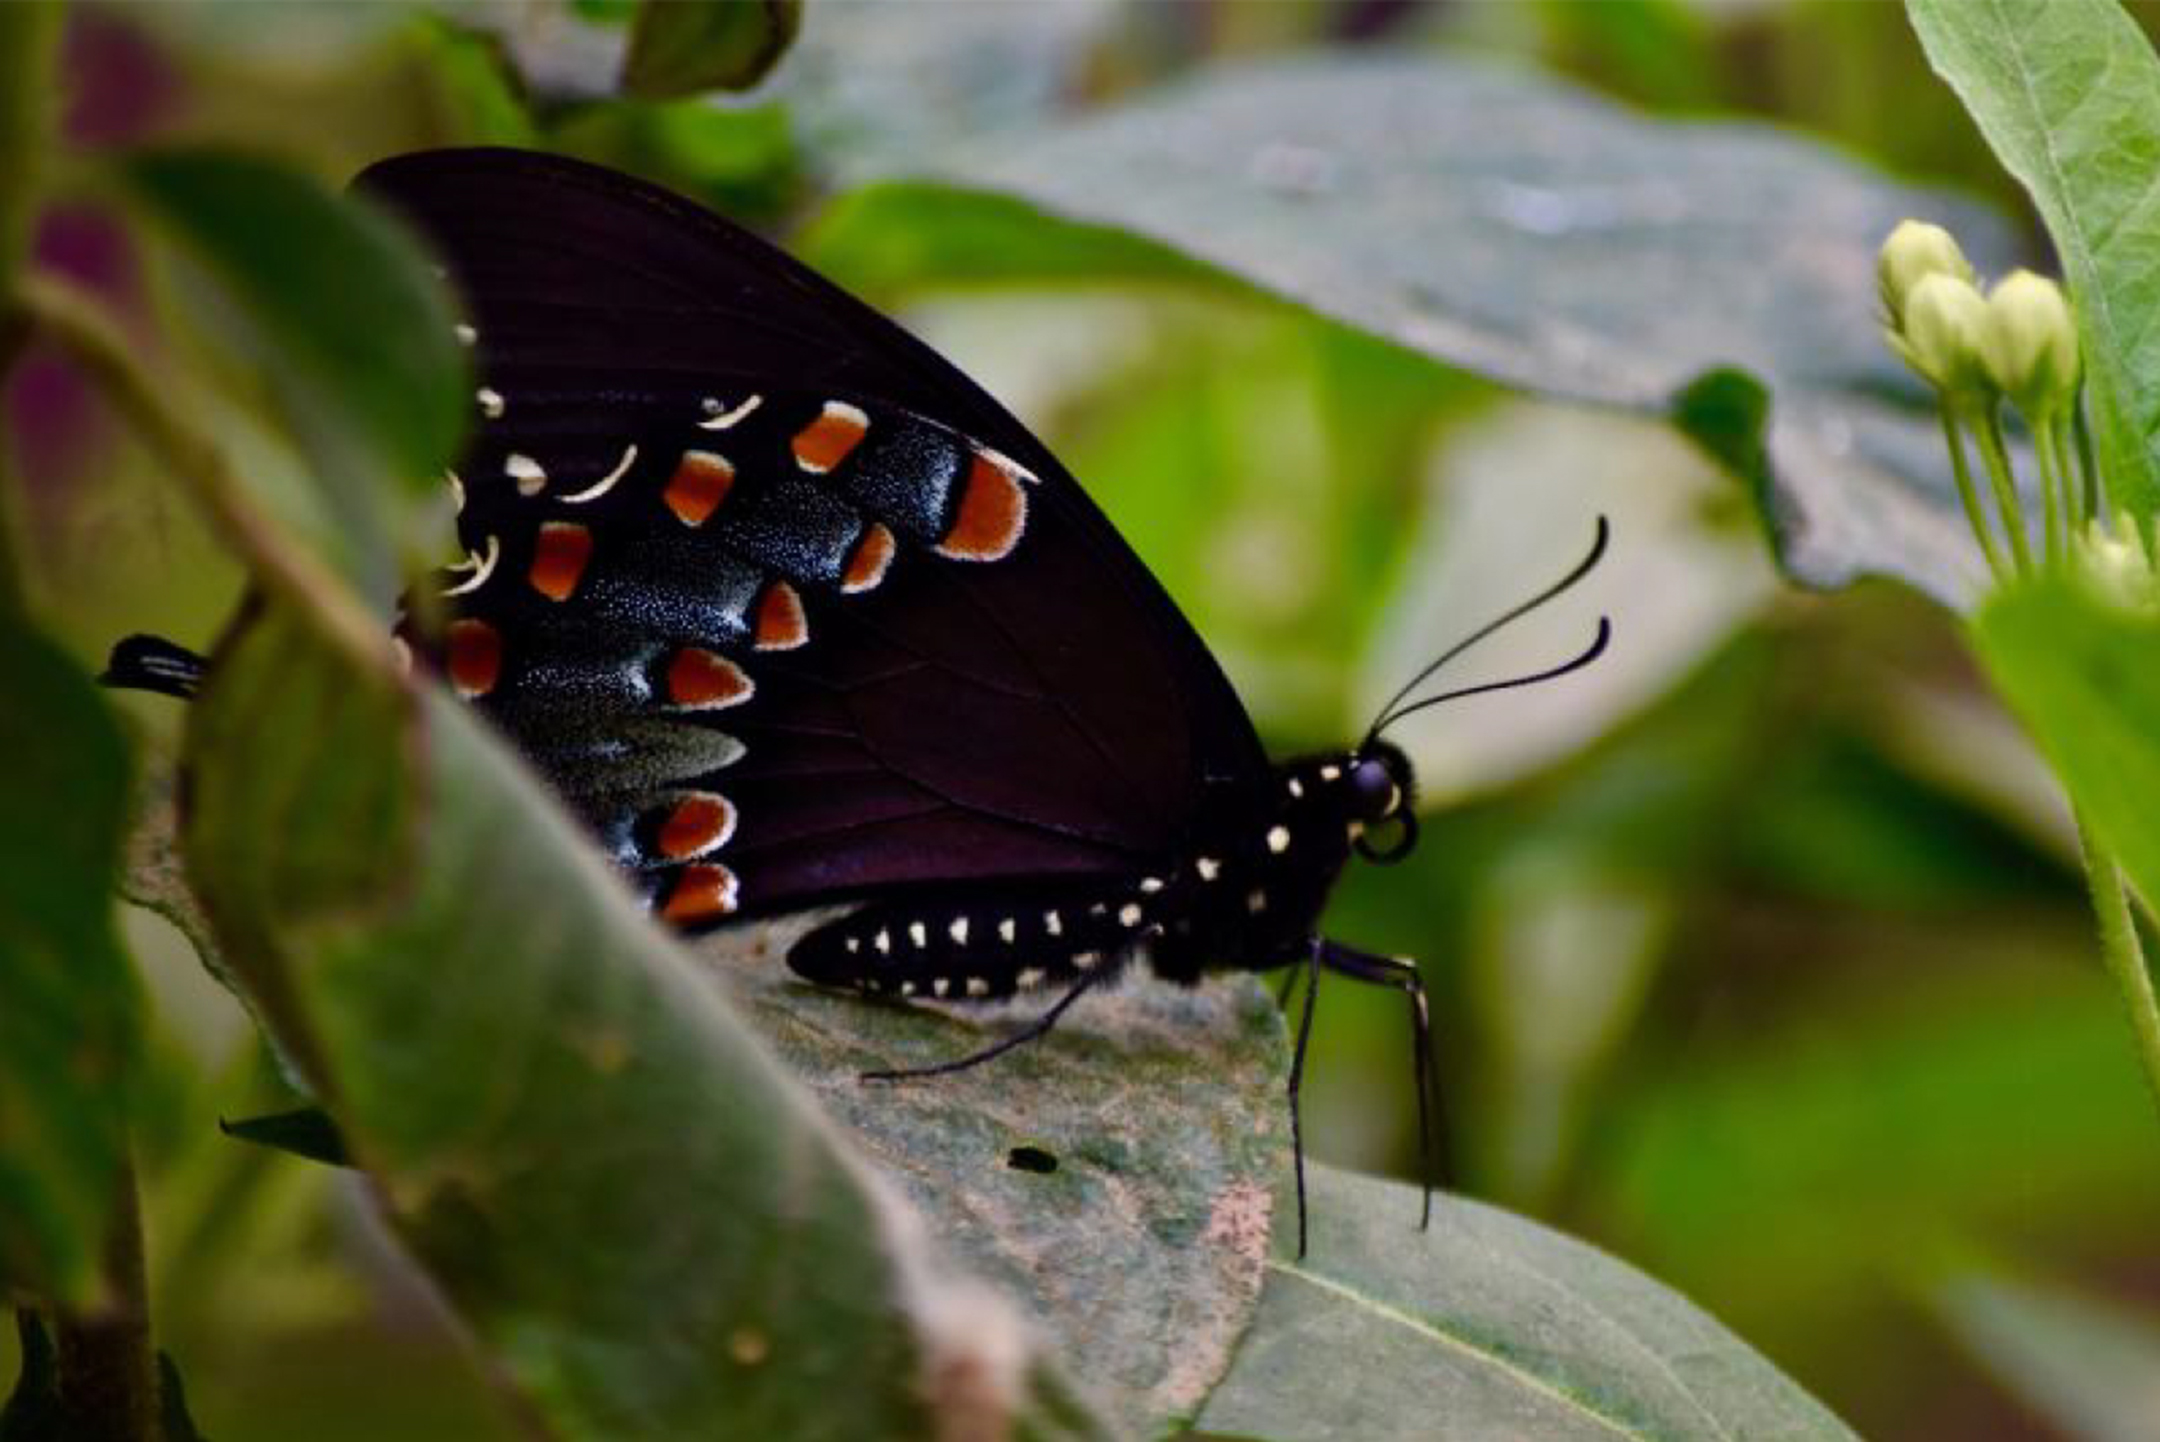 color photograph of a black butterfly with orange-dotted wings perched on a leaf